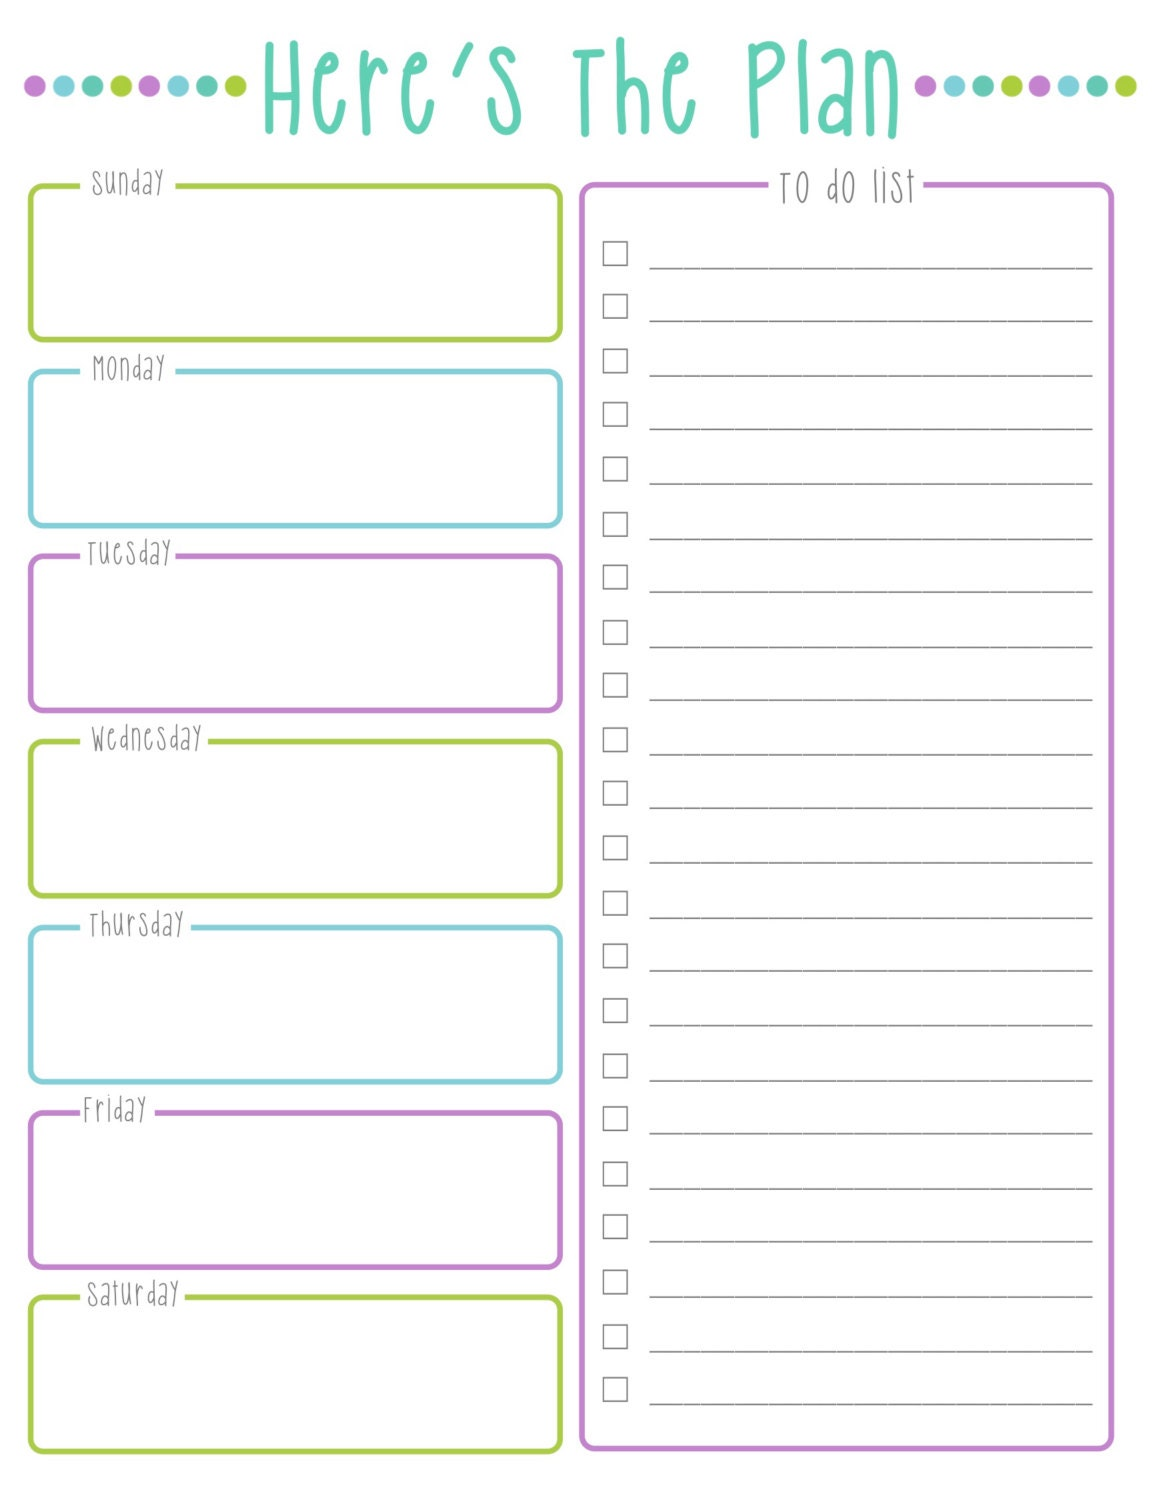 cool to do list template - here 39 s the plan weekly to do list cool colors